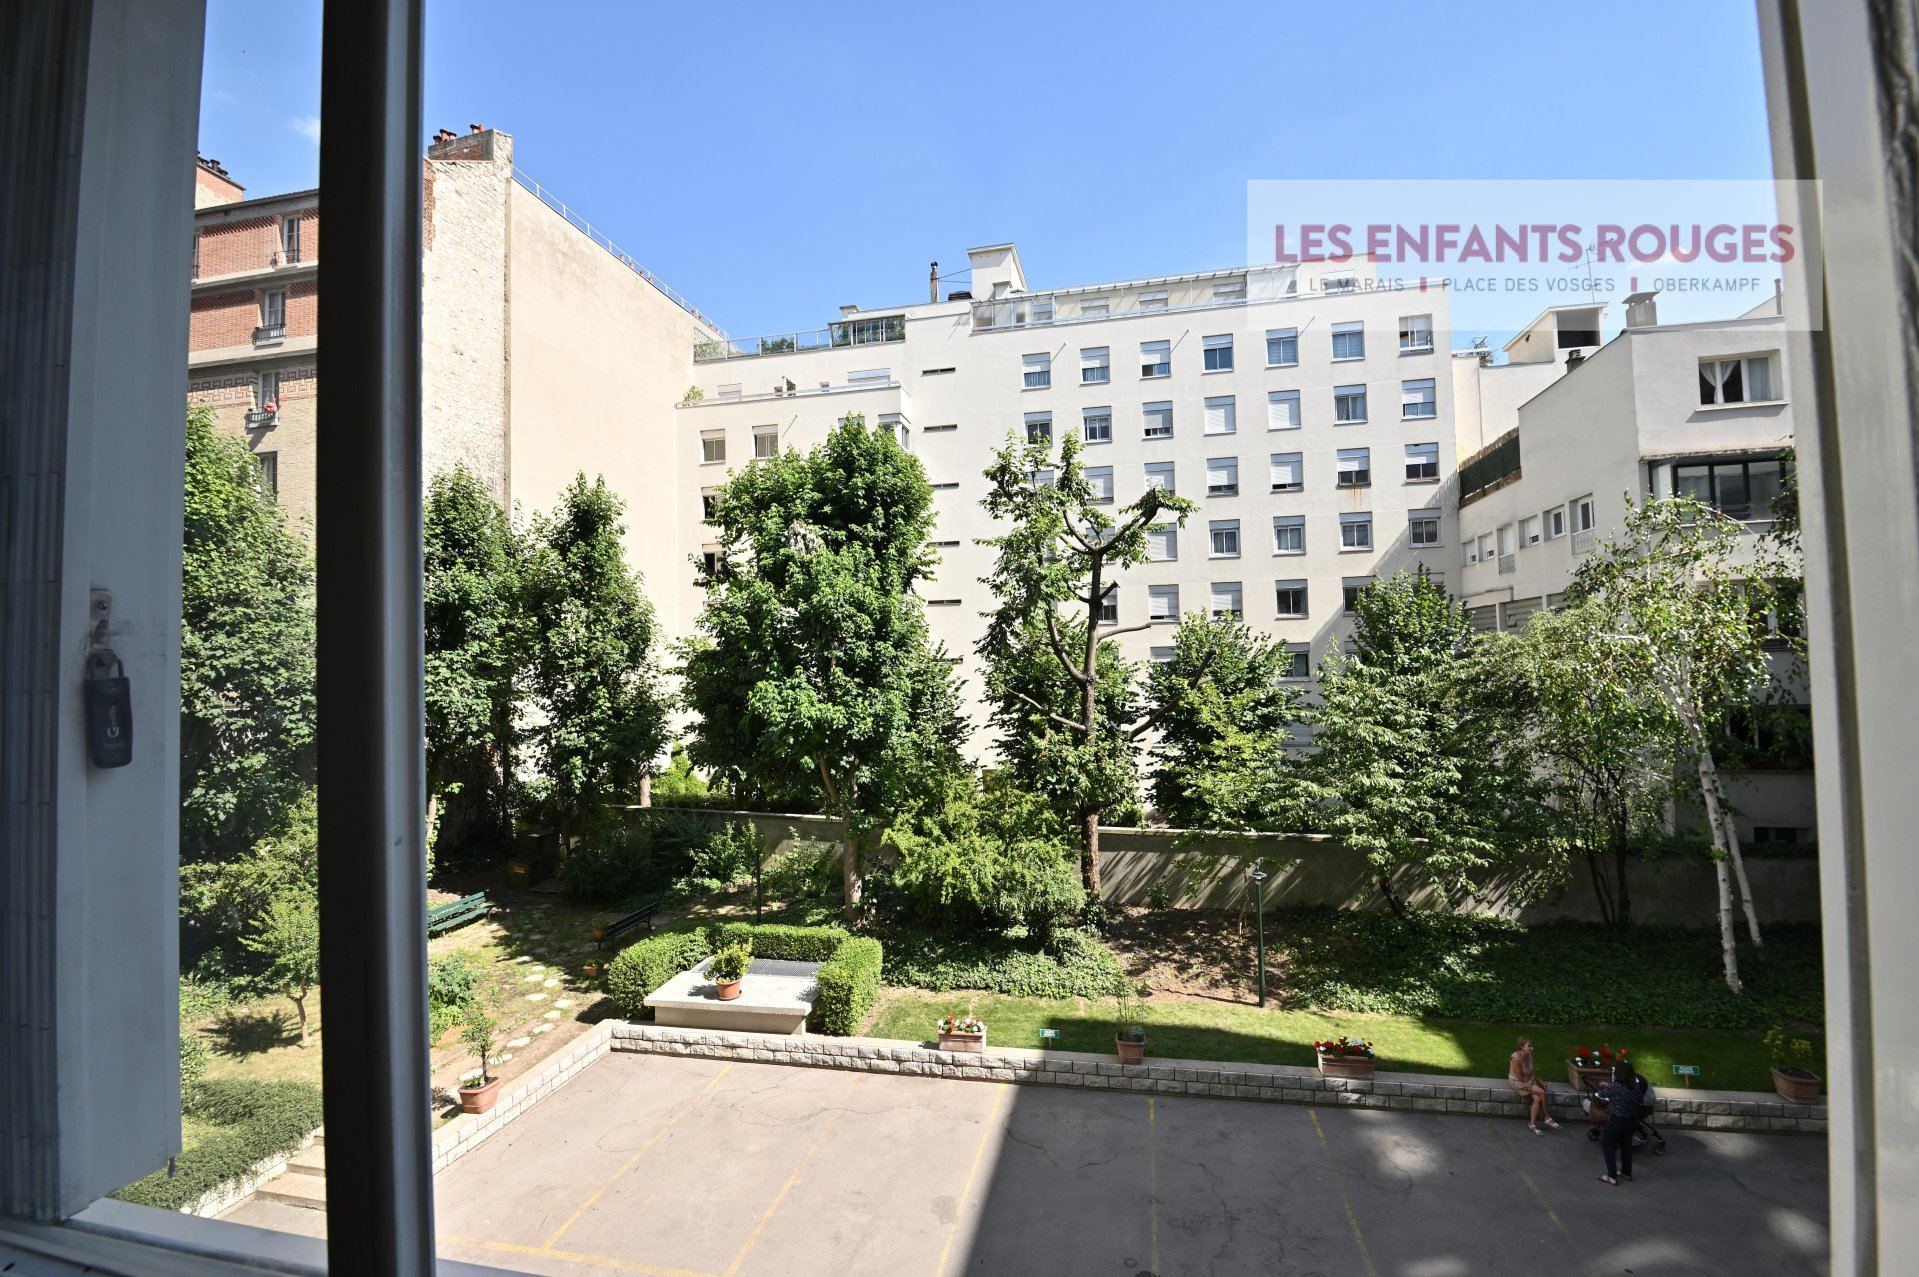 Sale Apartment - Paris 20th (Paris 20ème) Père-Lachaise